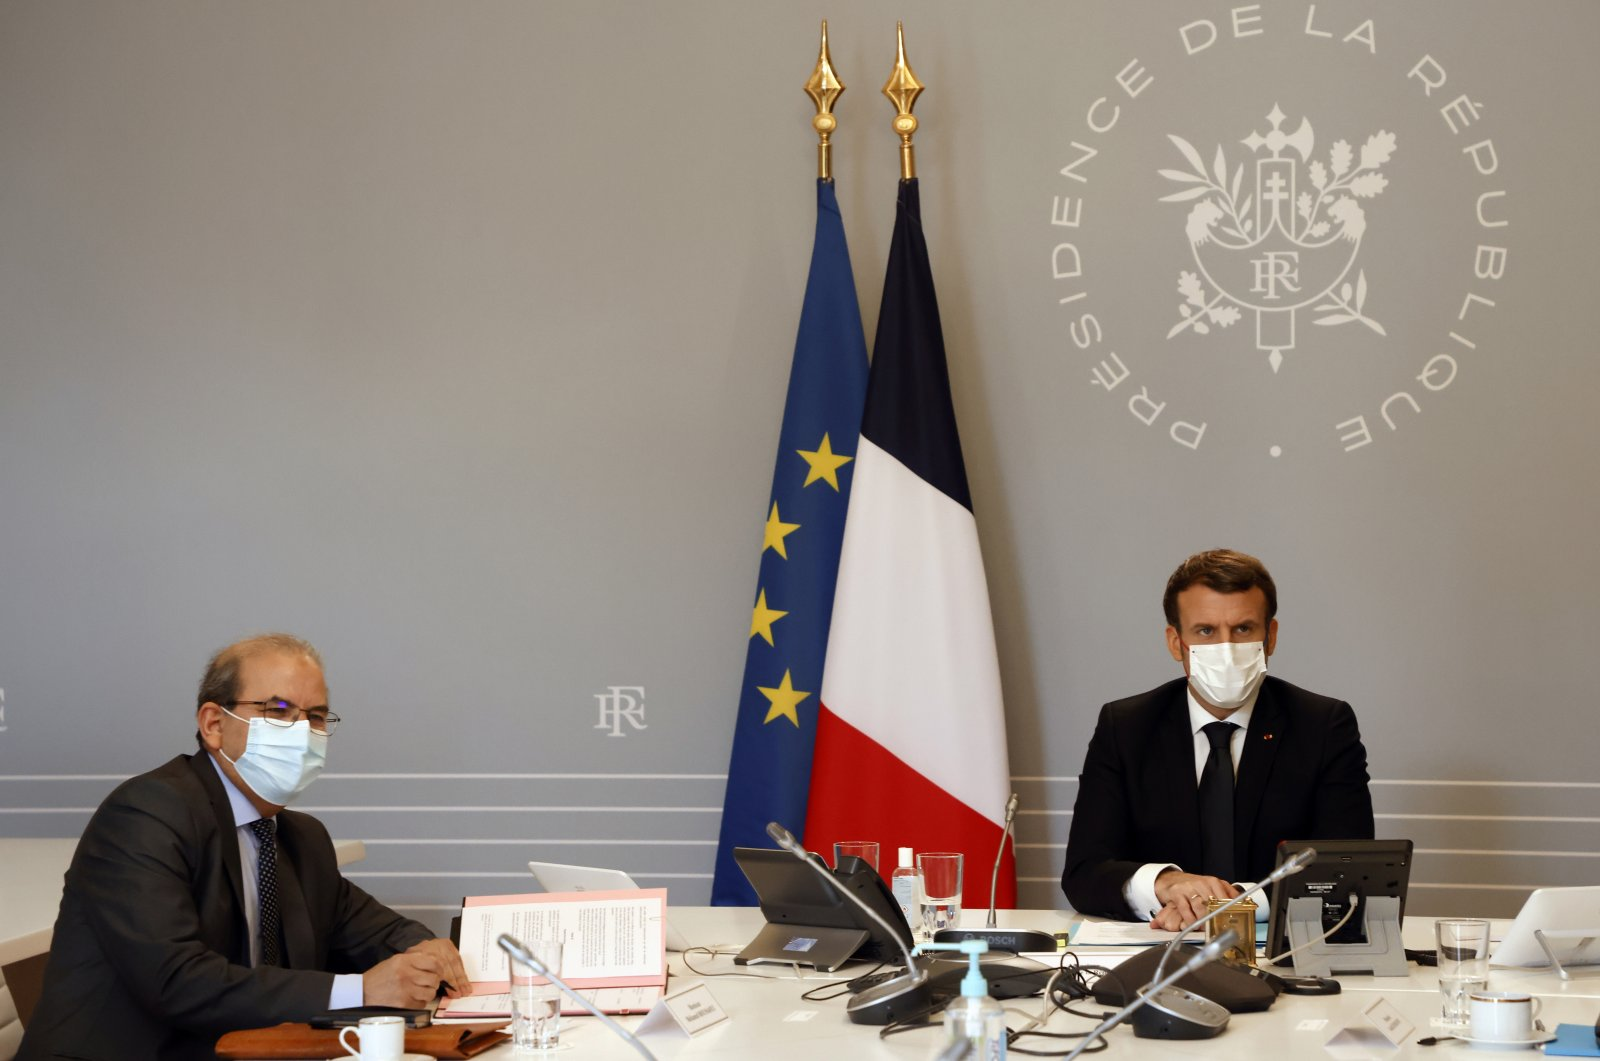 """Mohammed Moussaoui, president of the French Council of the Muslim Faith (CFCM) signs a """"Charter of principles"""" next to French President Emmanuel Macron, at the Elysee palace in Paris, France on Jan. 18, 2021. (Reuters Photo)"""